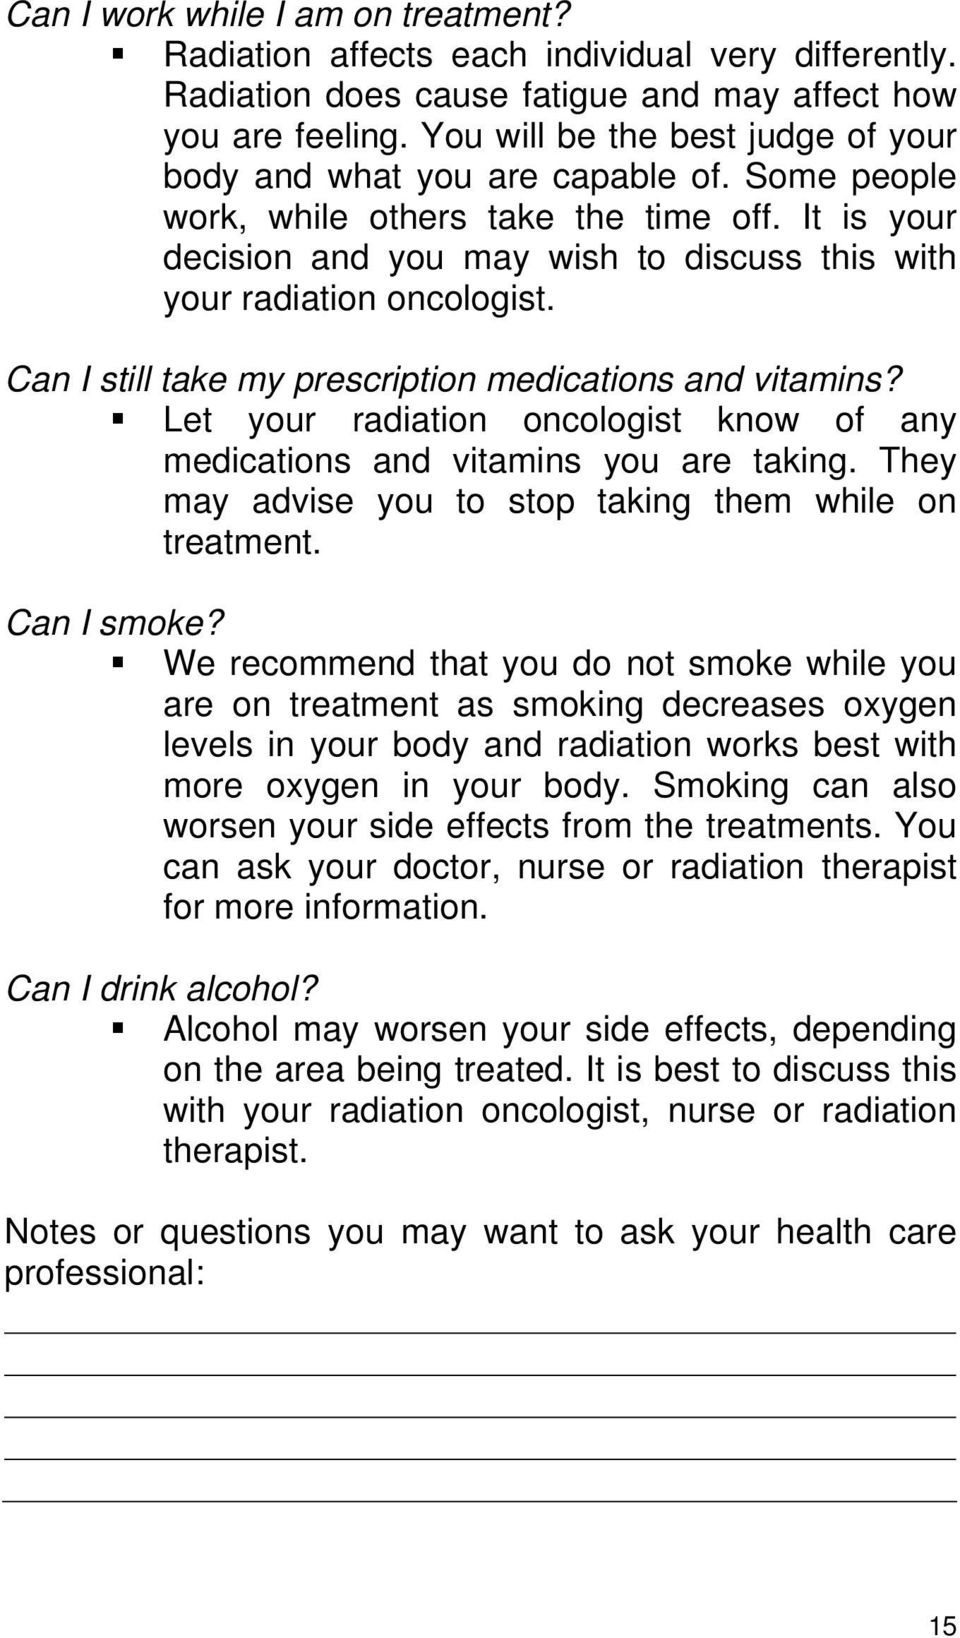 It is your decision and you may wish to discuss this with your radiation oncologist. Can I still take my prescription medications and vitamins?